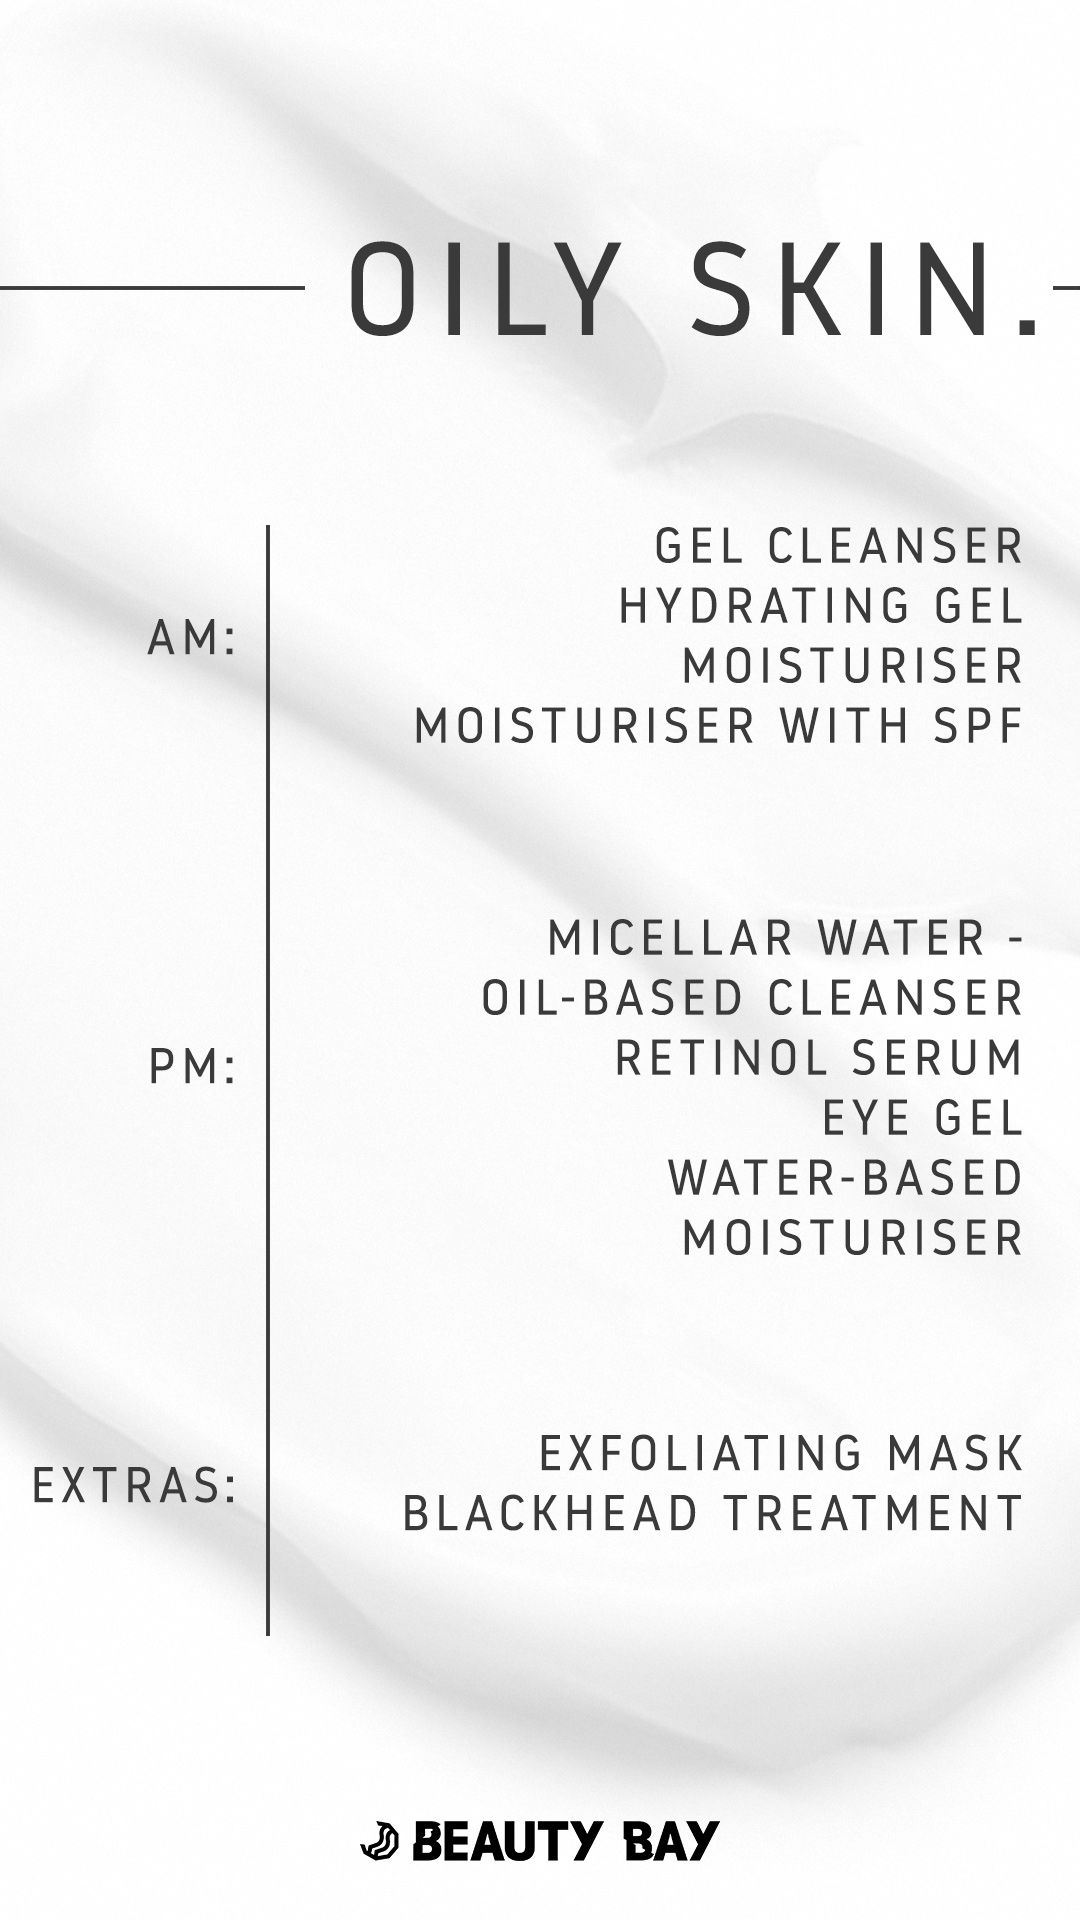 How To Build A Skincare Routine For Oily Skin Oily skin